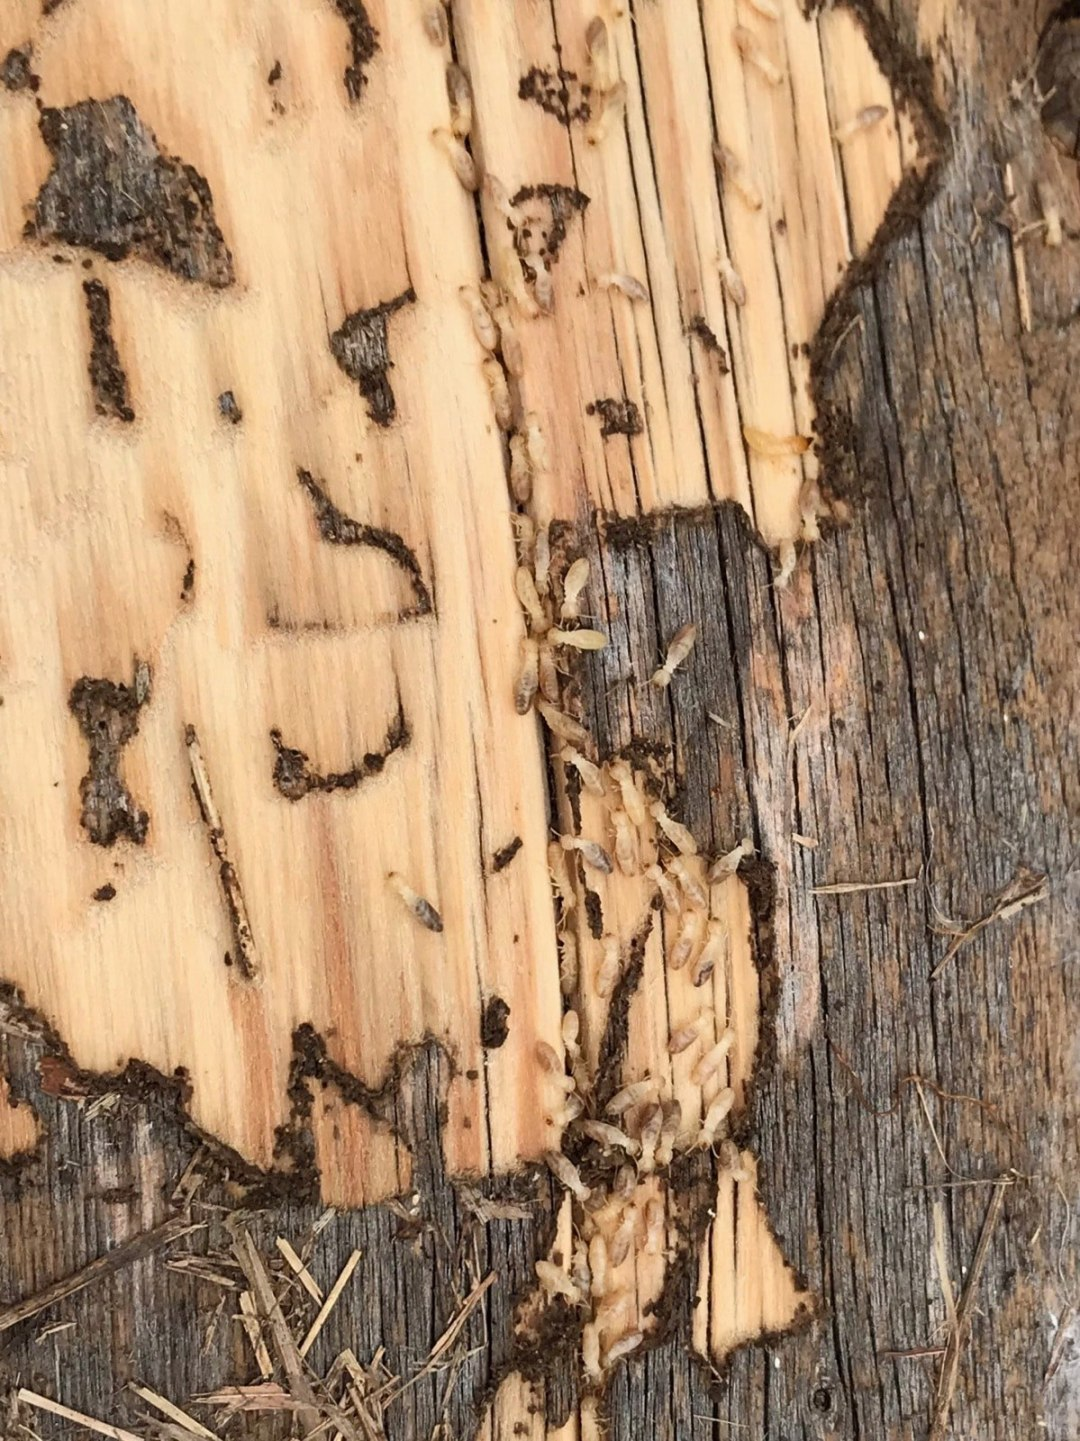 termite damage on wood with termites still present